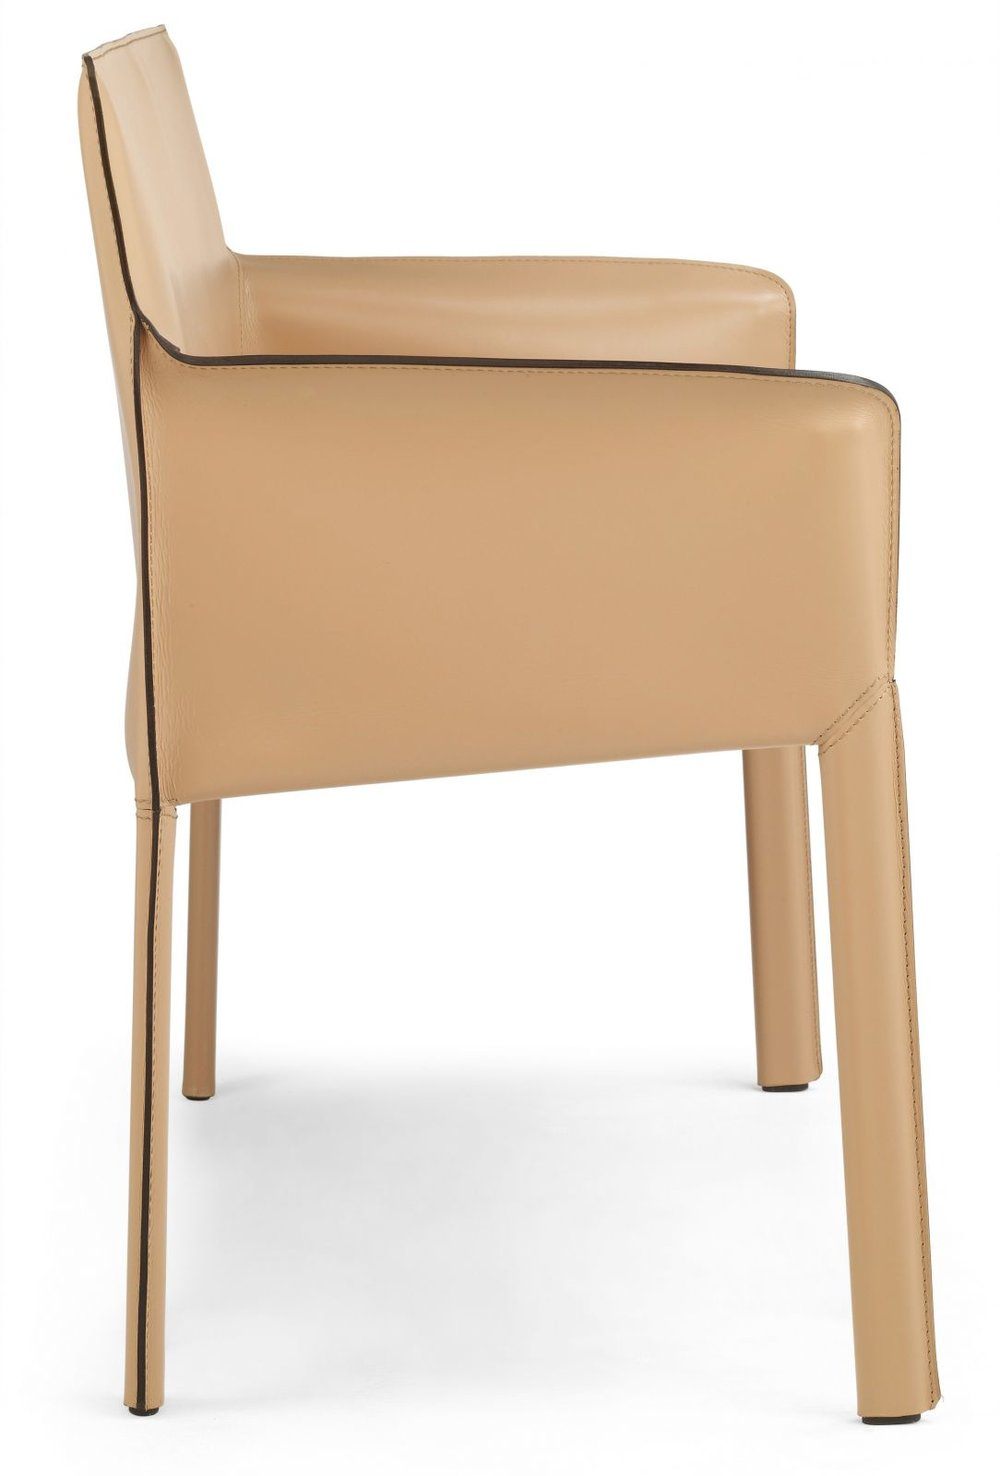 MOF 141 Modern Office Chair